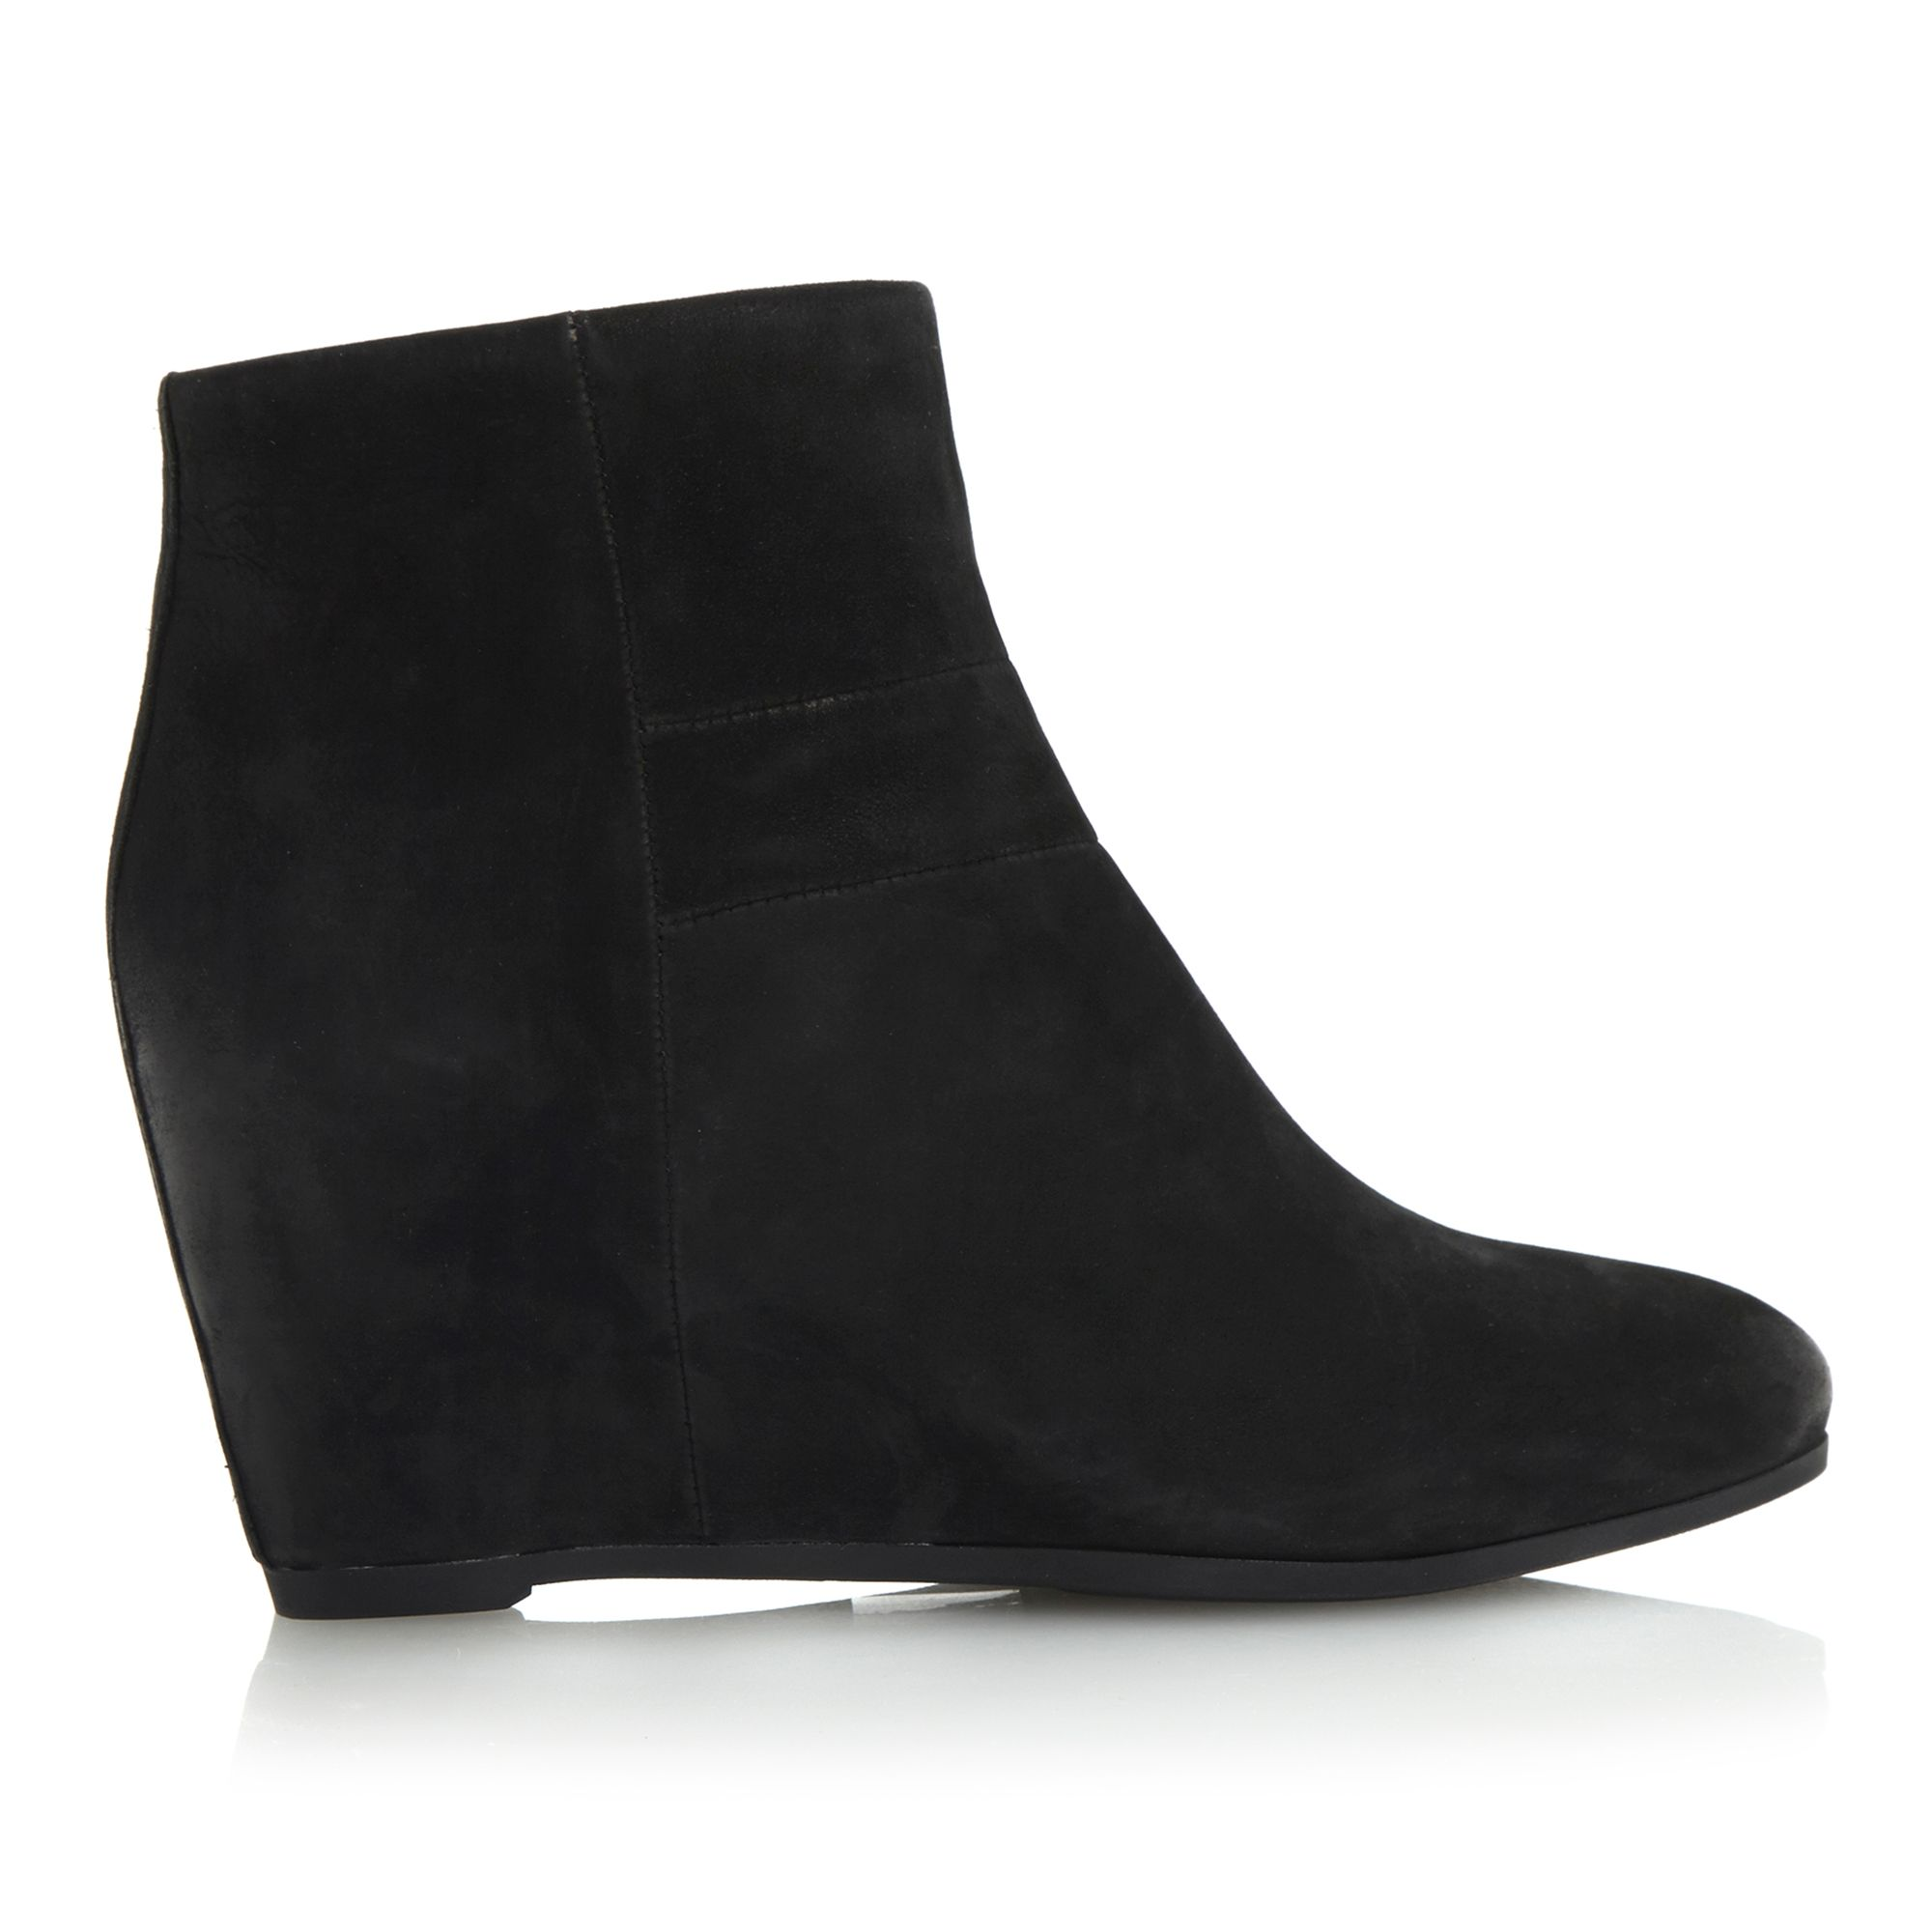 geox ultraviolet d34 side wedge ankle boots in black